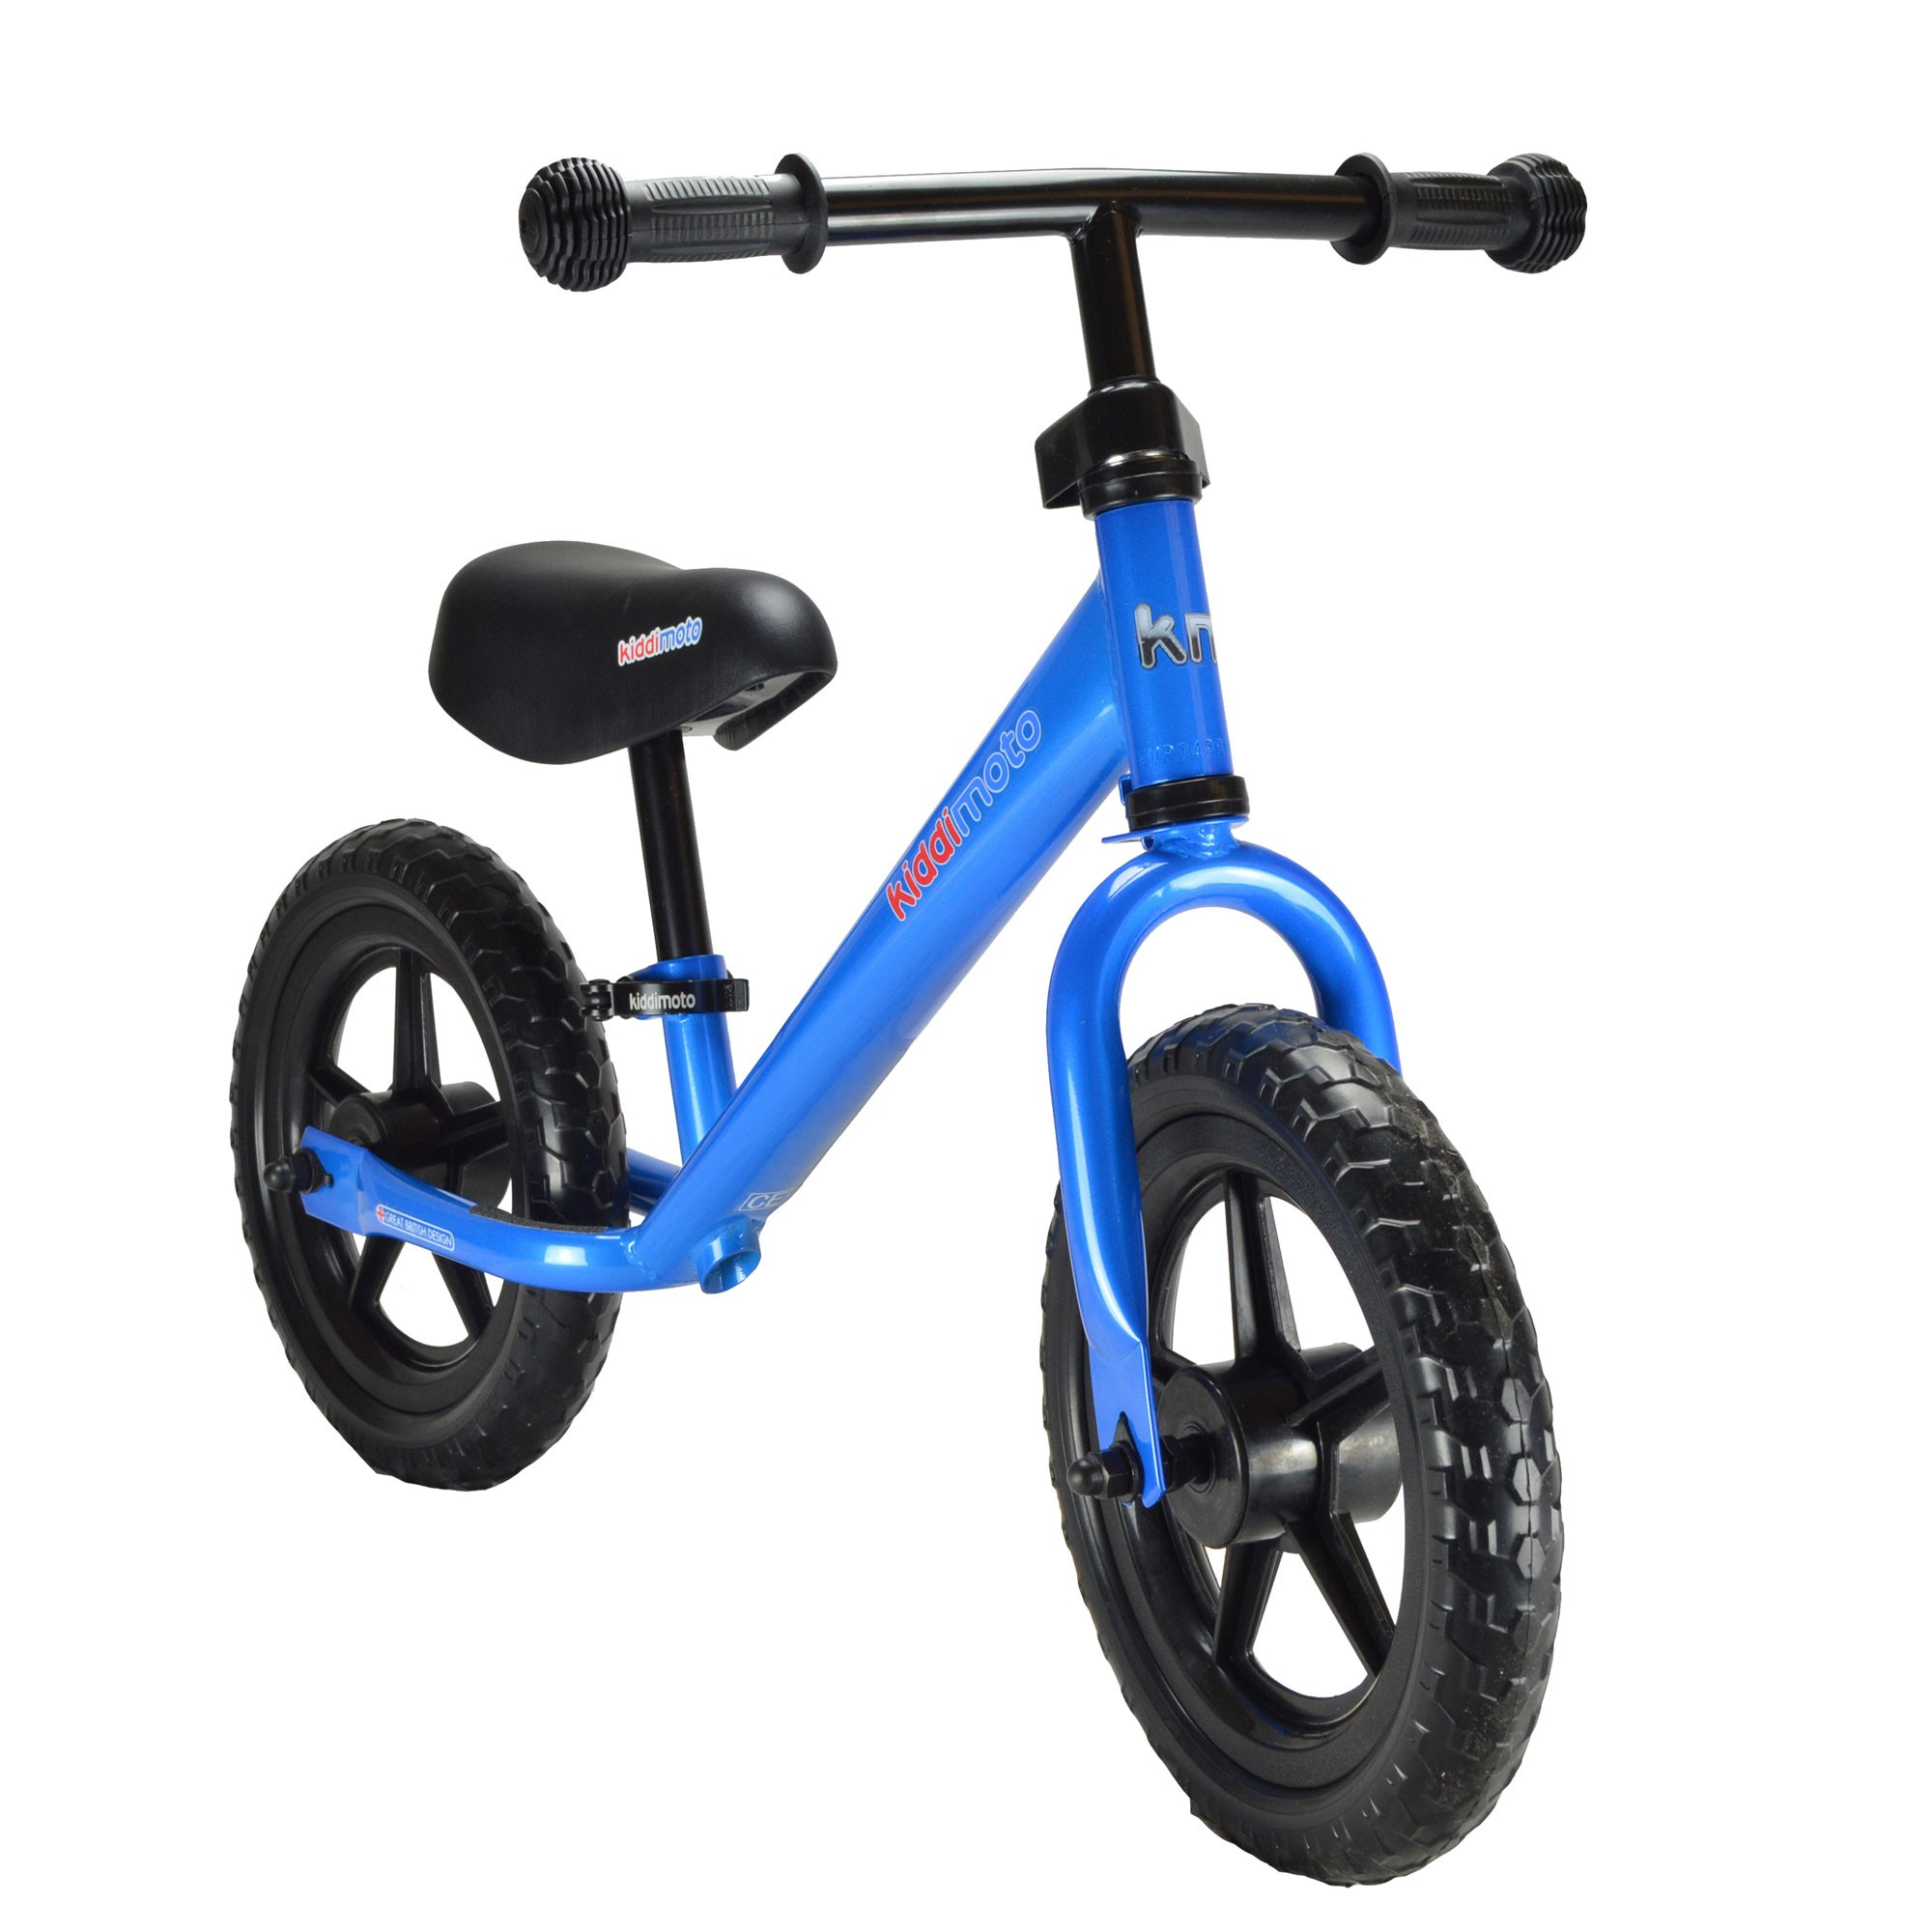 "kiddimoto Laufrad Super Junior SJ4 Metall verstellbar 12"" blau Bild 1"